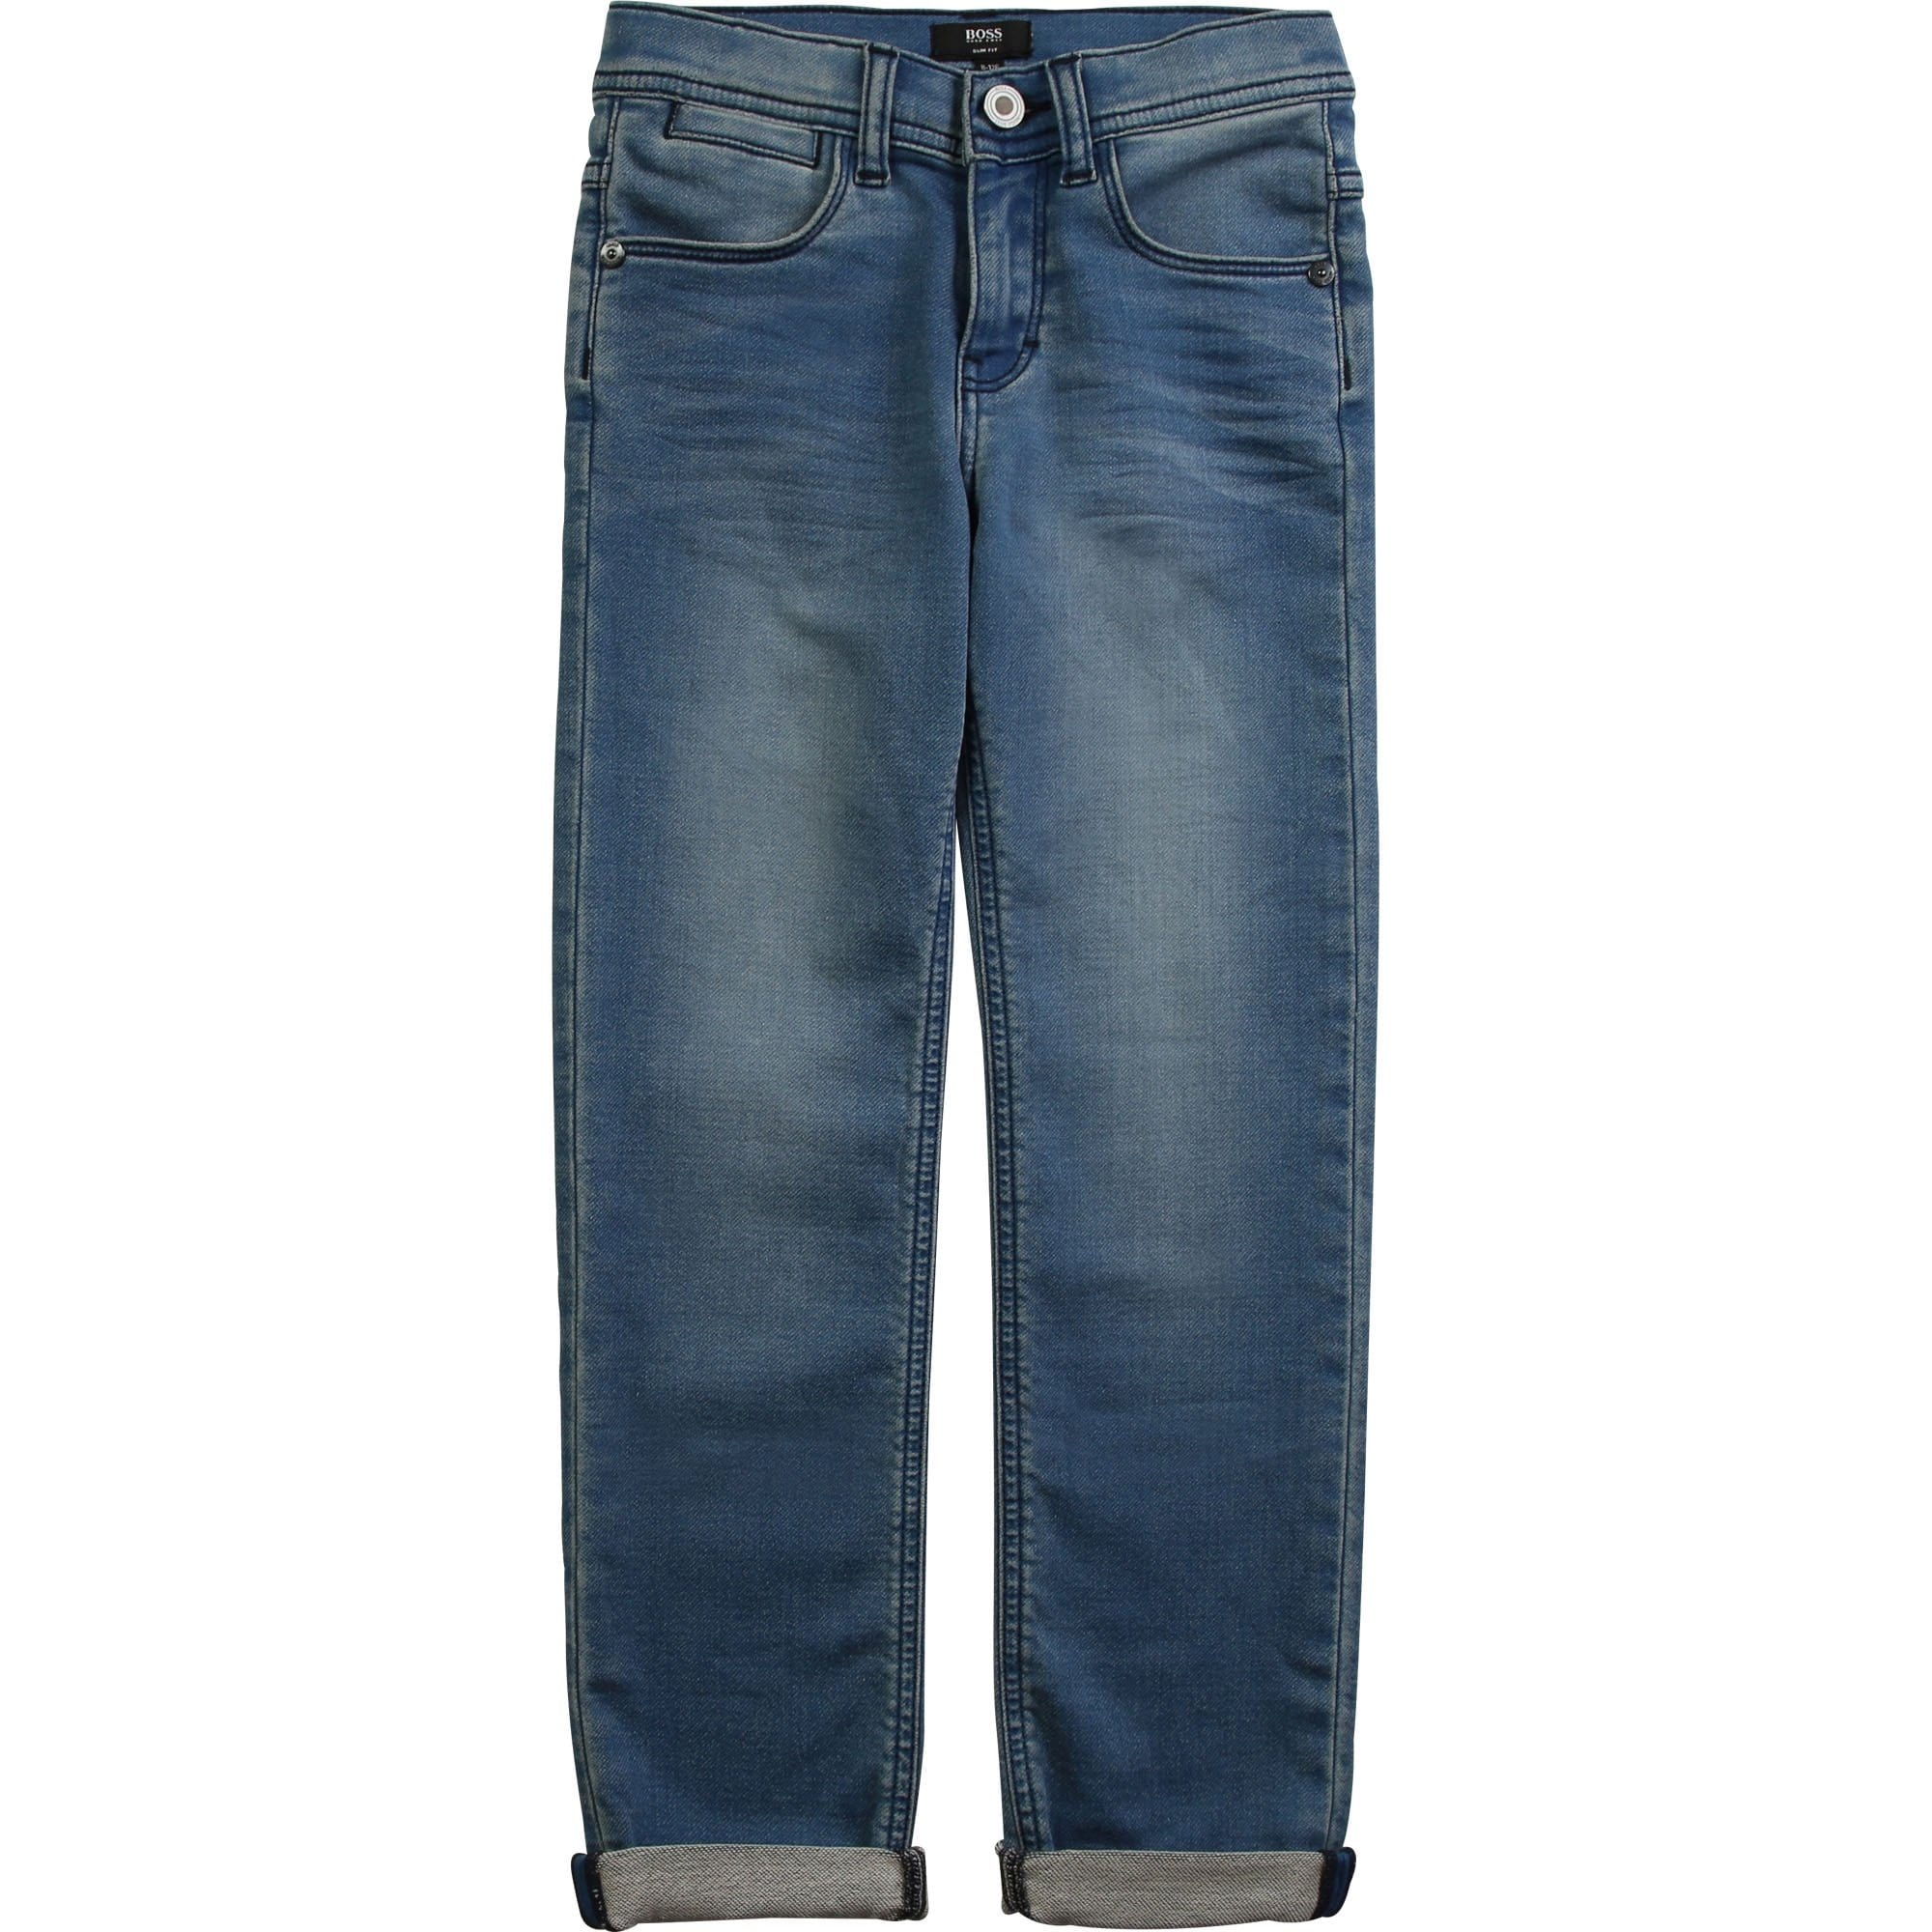 Hugo Boss Double Stone Denim Jeans J24641/Z25